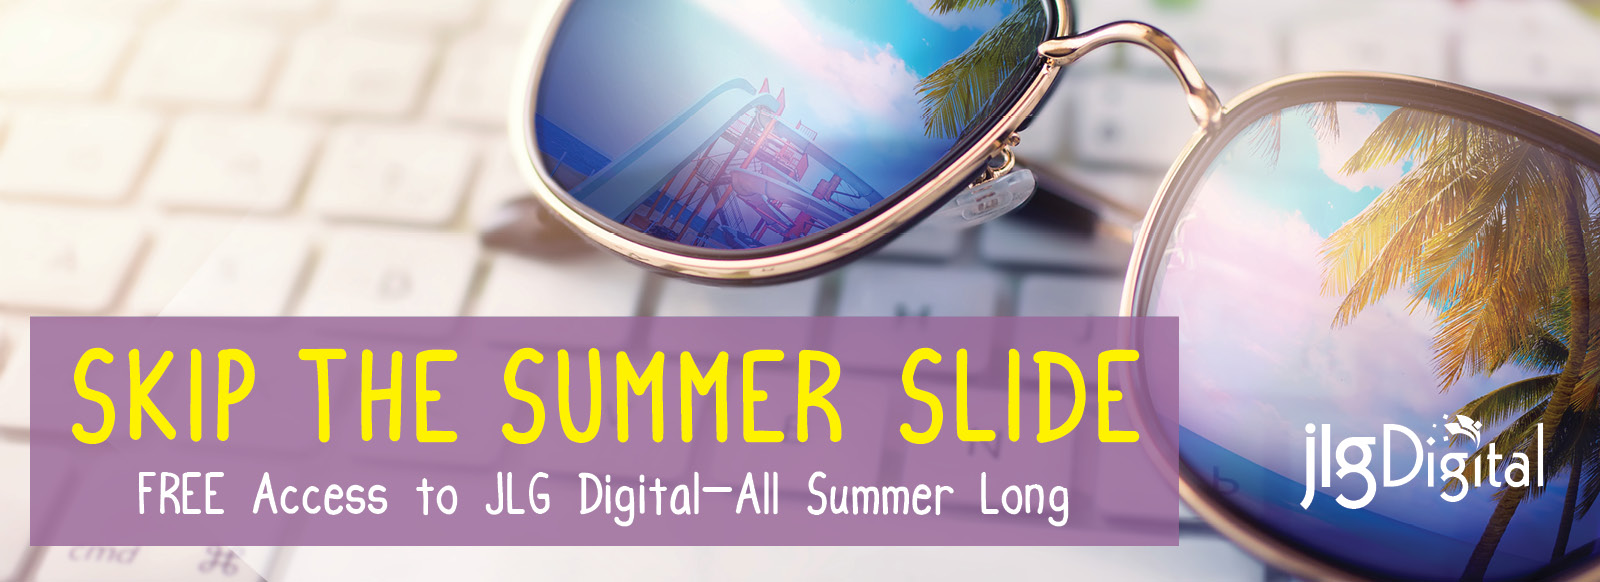 FREE JLG Digital All Summer Long